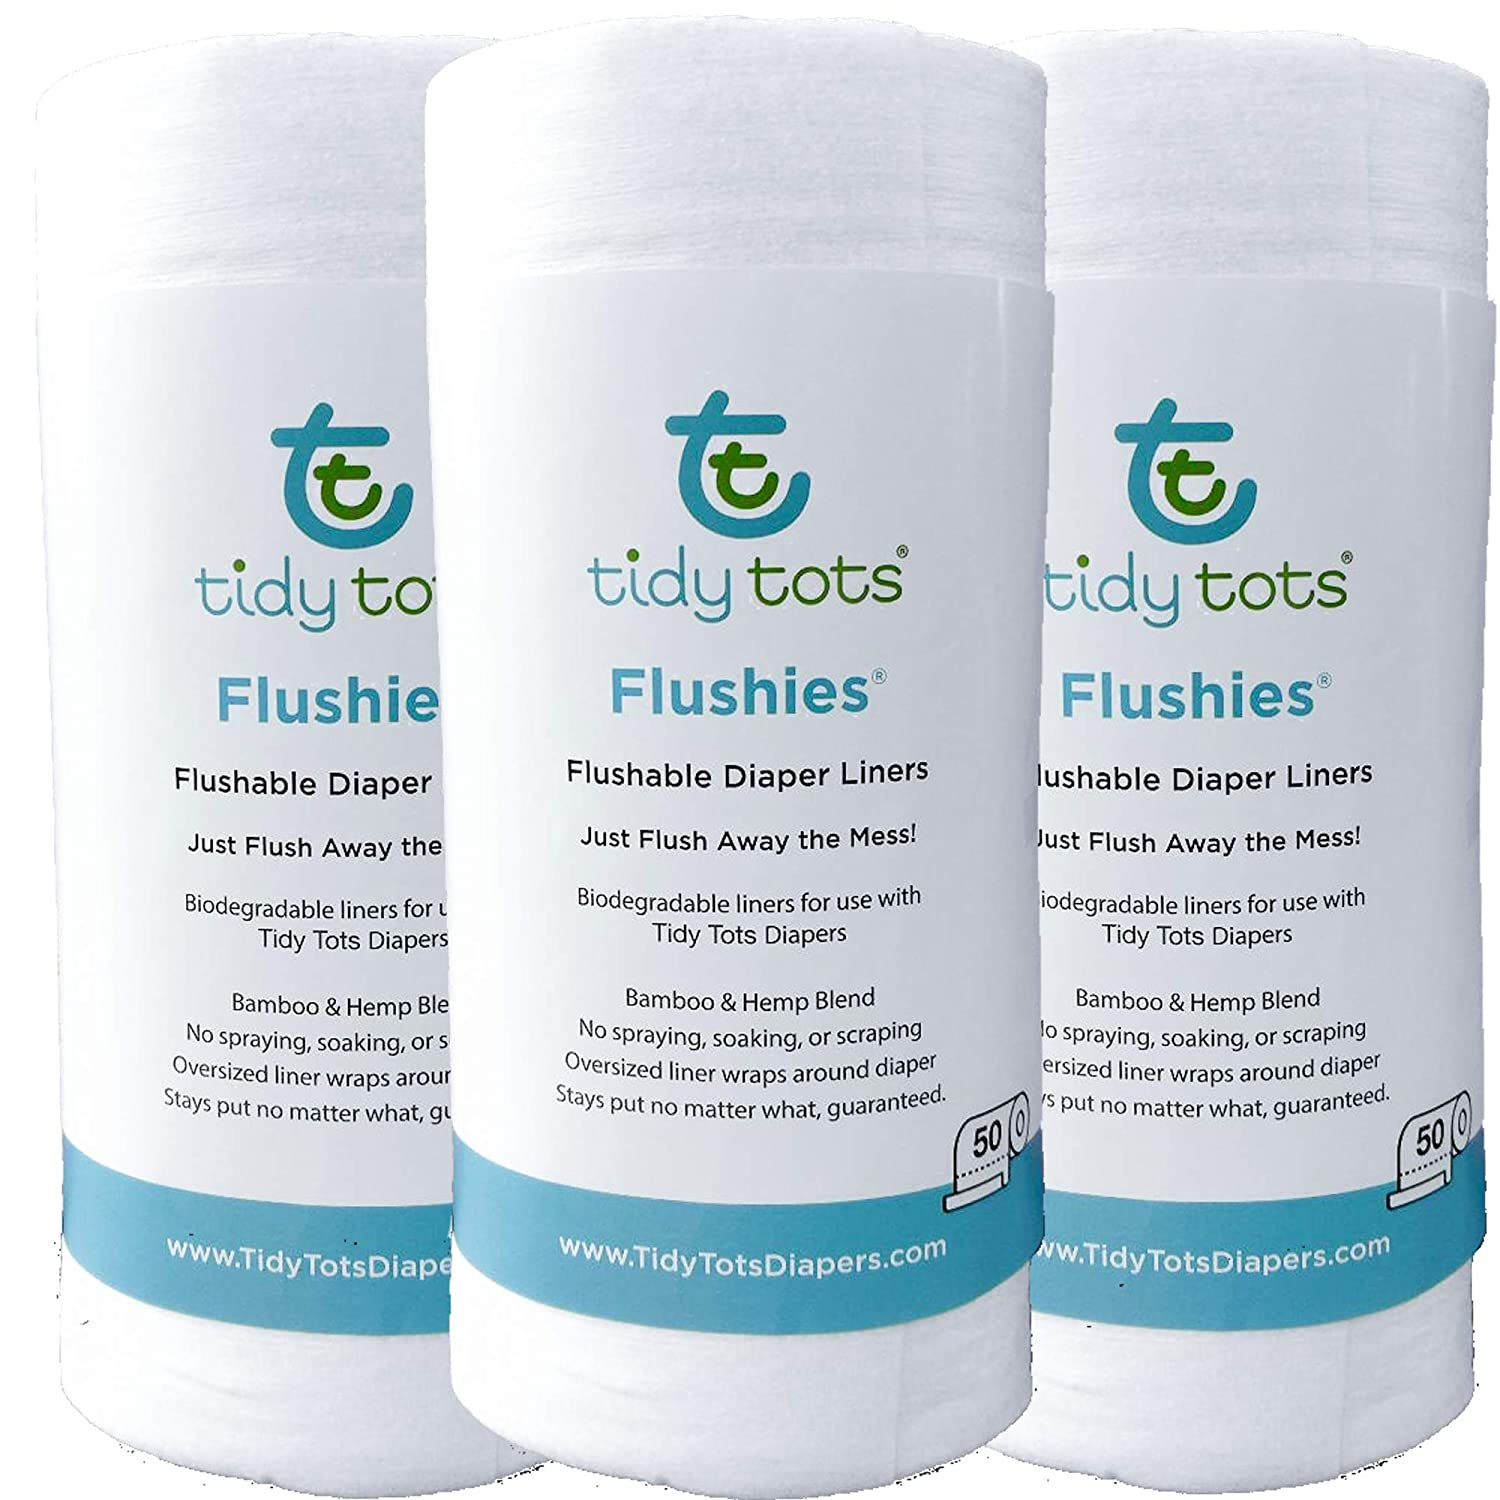 Tidy Tots Diapers Flushies Biodegradable Cornstarch Diaper Liners (3 Pk One Size)